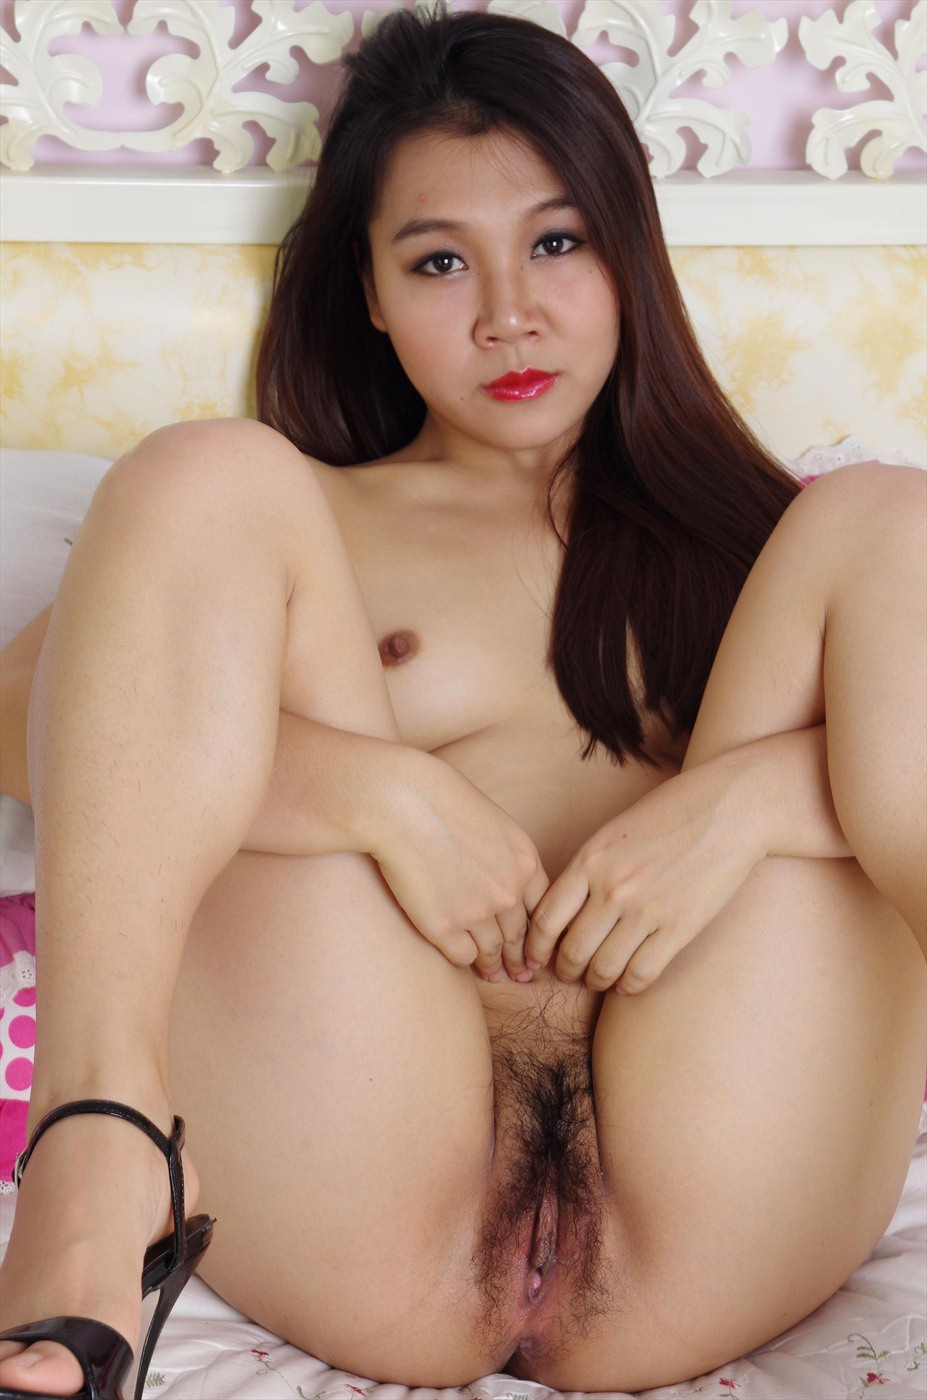 Chinese Nude Doudou « DPP_7531 « Free Pussy Pictures ...